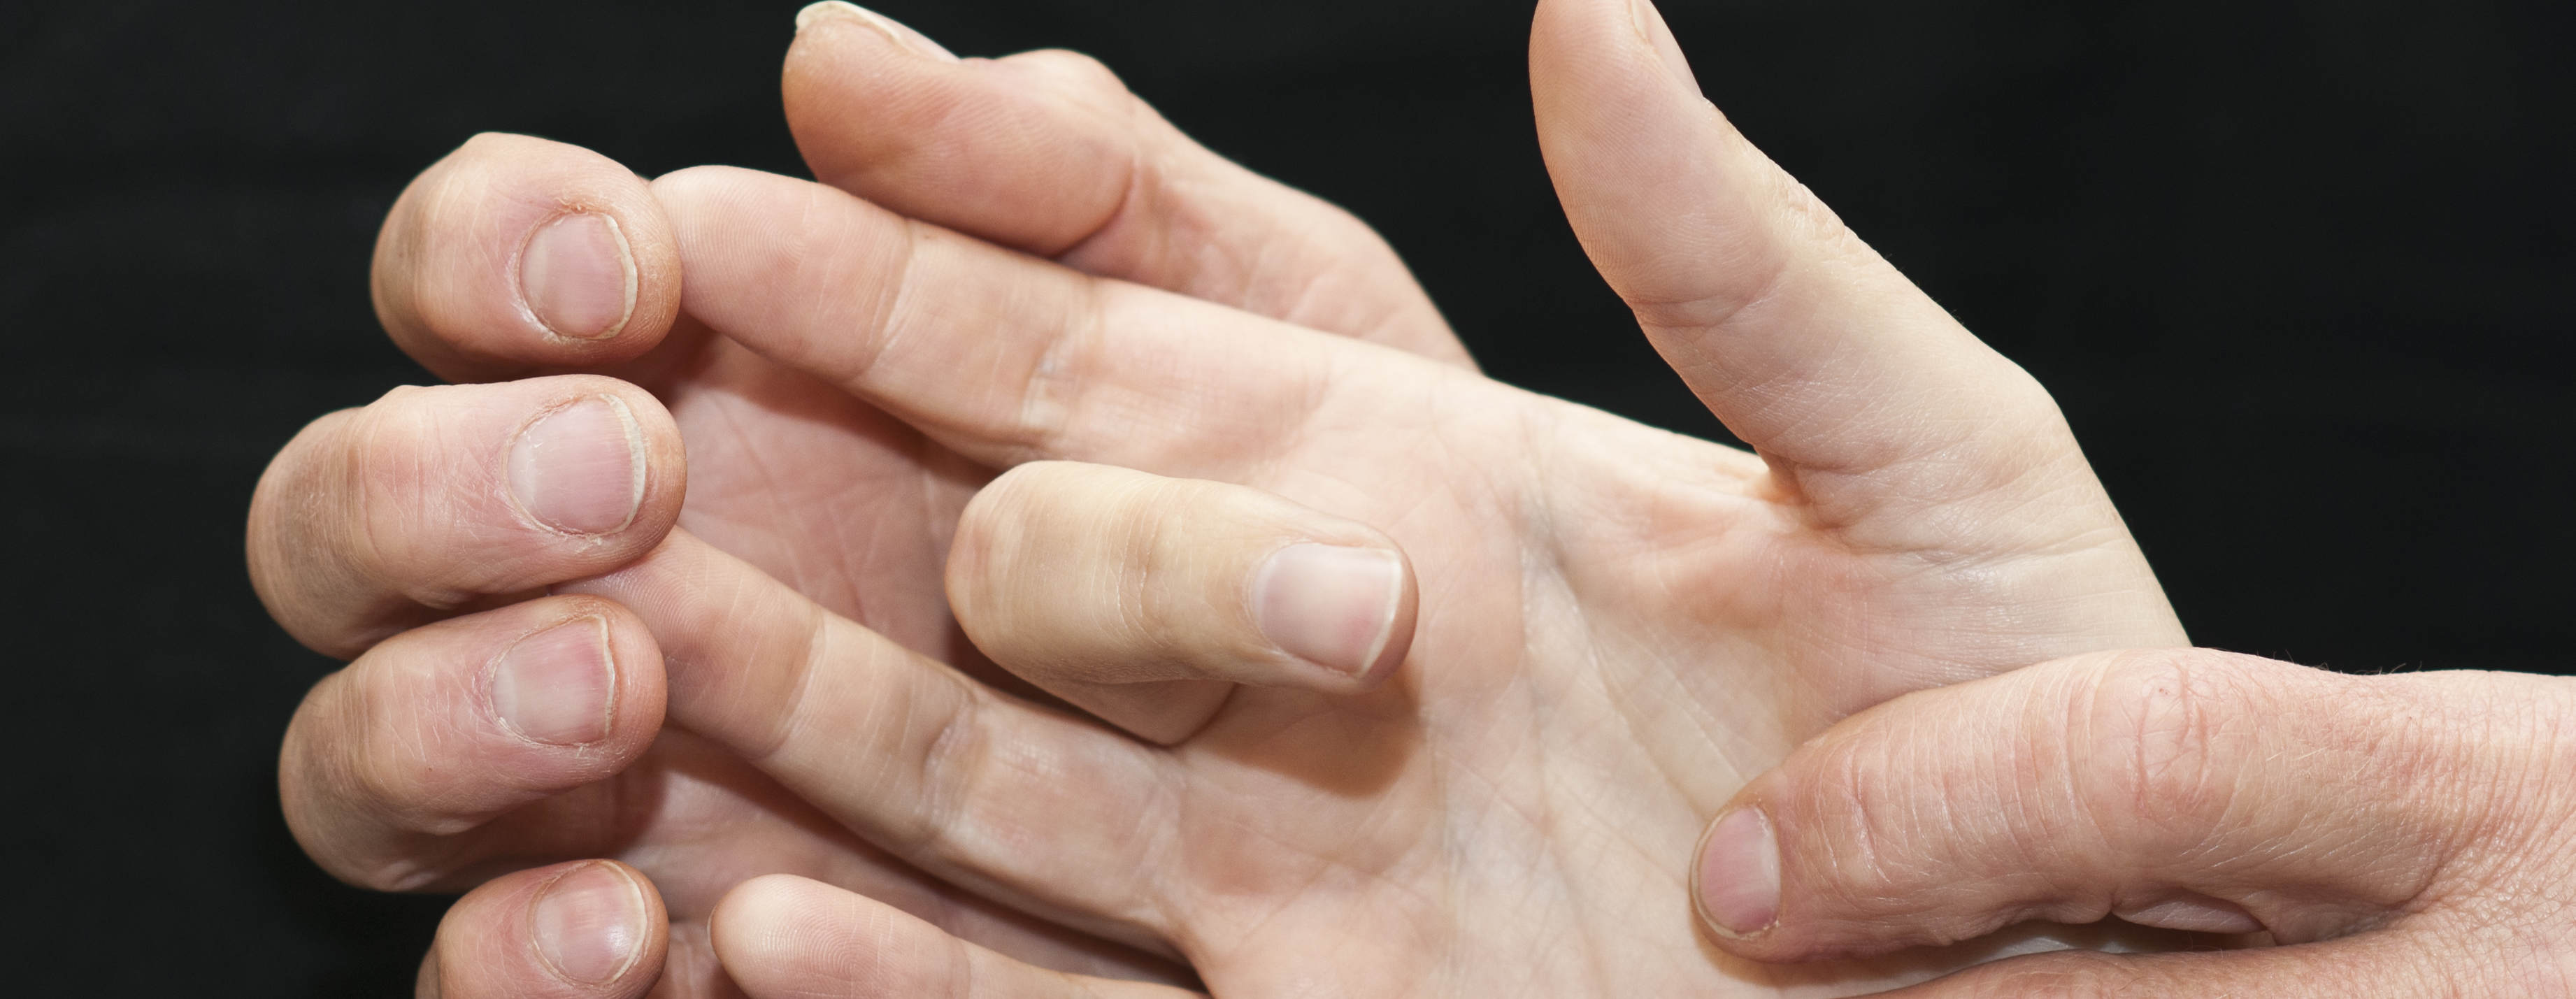 Researcher touches fingers and palm of participant in a study of sensory perception